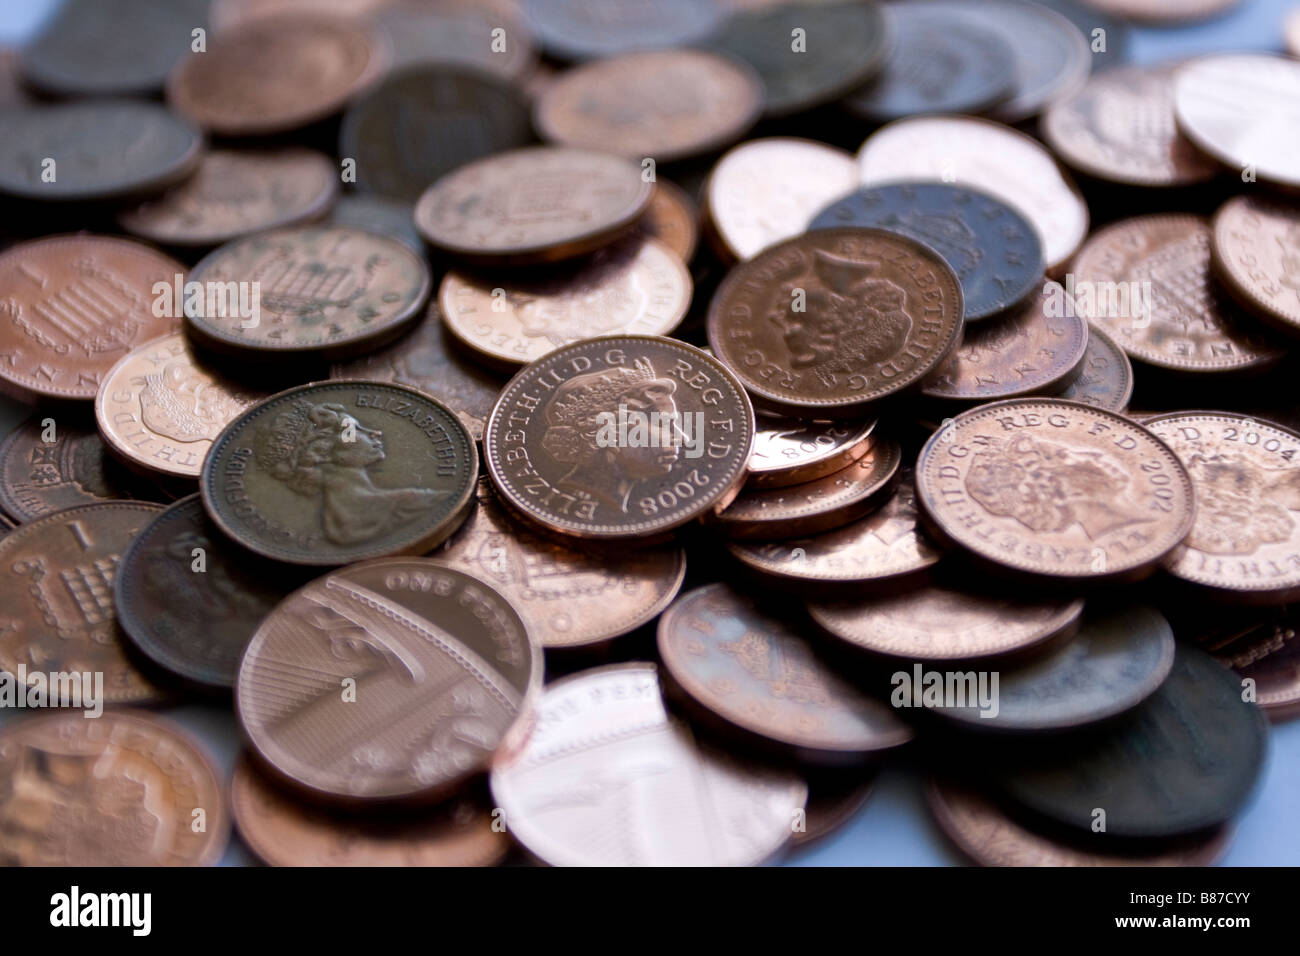 lots of pennies - Stock Image